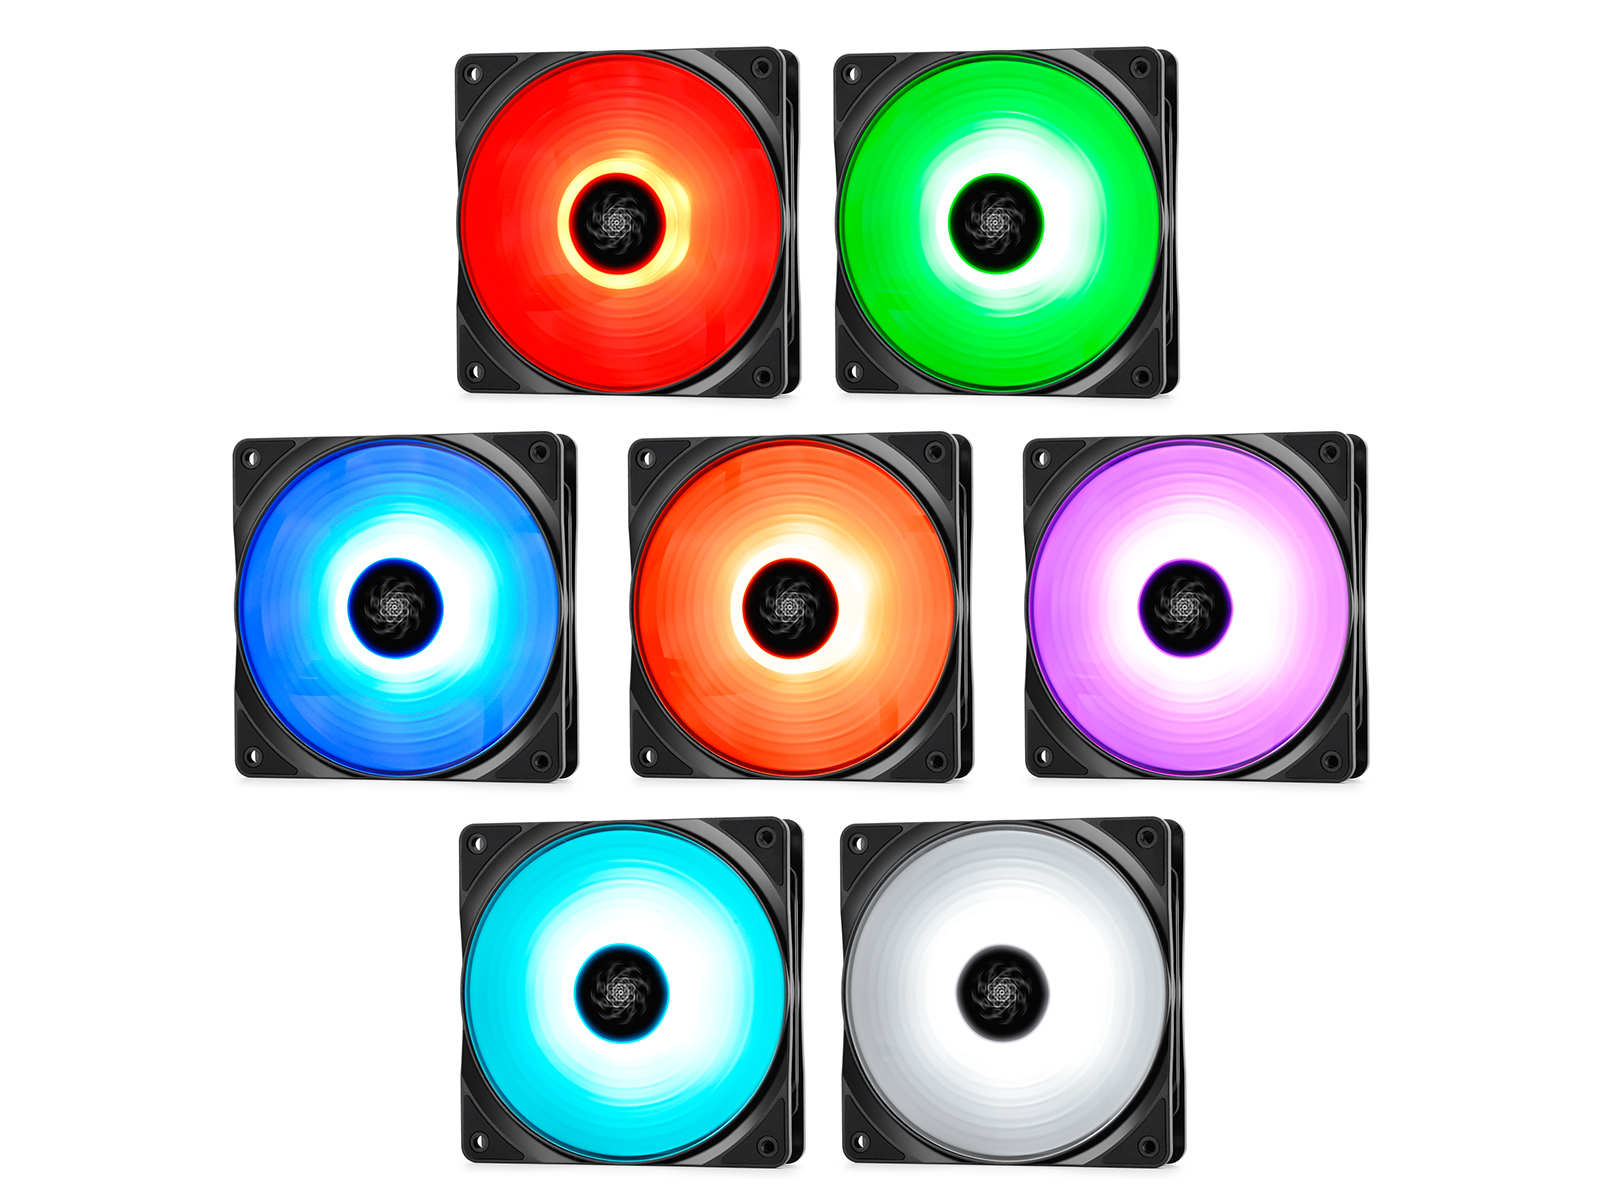 Deepcool: RF120 3-in-1 Customisable RGB LED Fans - 120mm (3-Pack) image